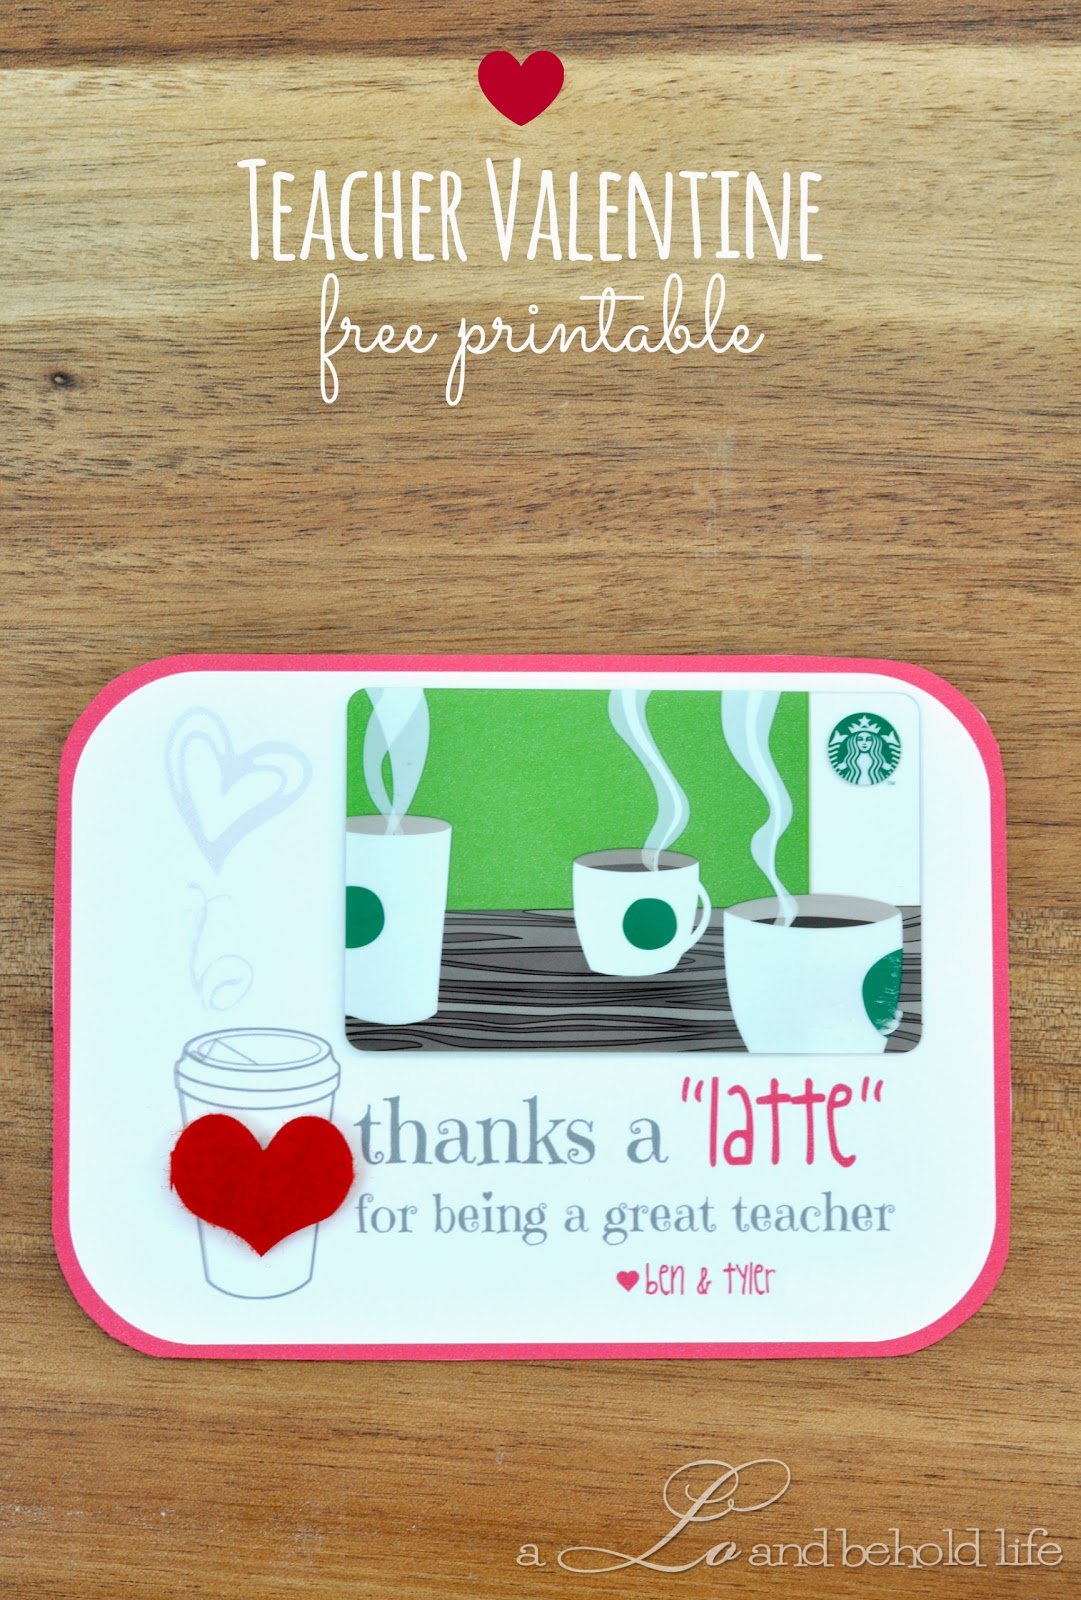 graphic regarding Teacher Valentine Printable named Trainer Valentine No cost Printable A Lo and Behold Existence